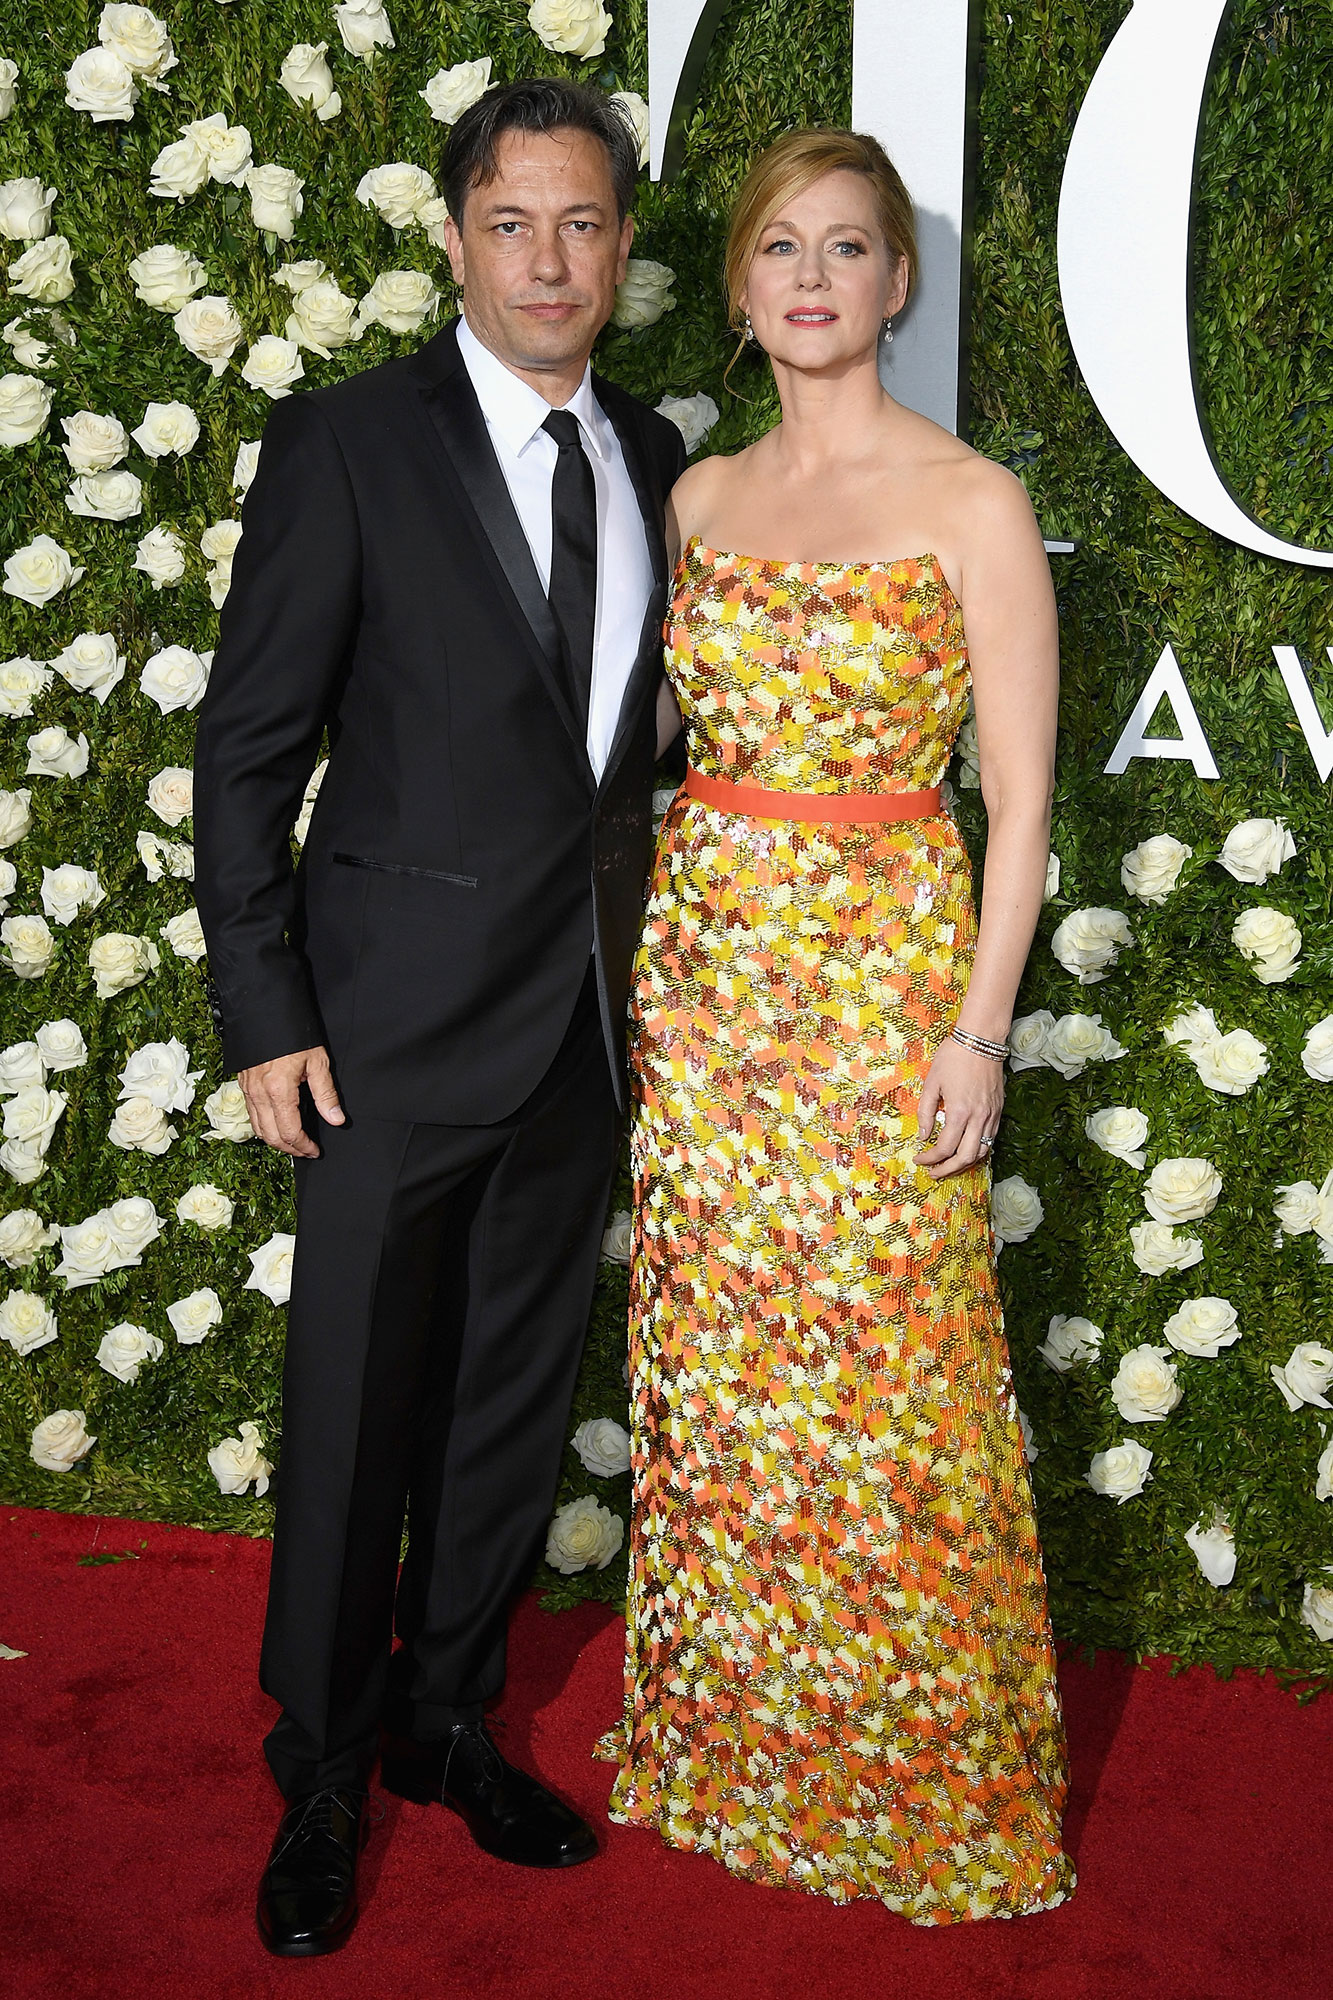 Marc Schauer and Laura Linney - The Ozark actress and her husband met son Bennett in January 2014 after a pregnancy so secret that she wasn't even photographed with a baby bump.